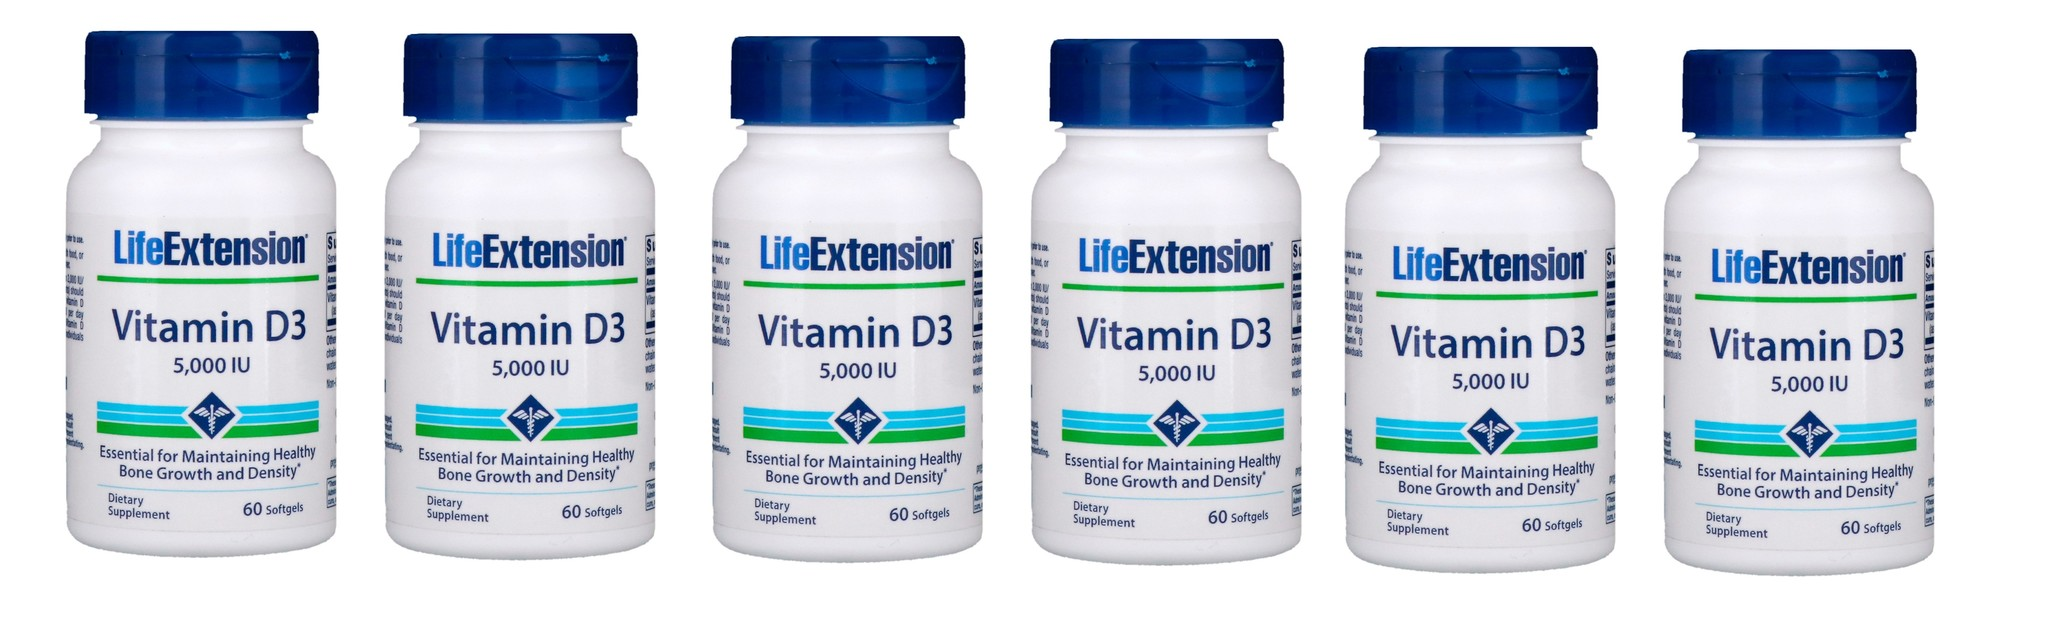 Life Extension Vitamin D3 5000 IU, 6-packs